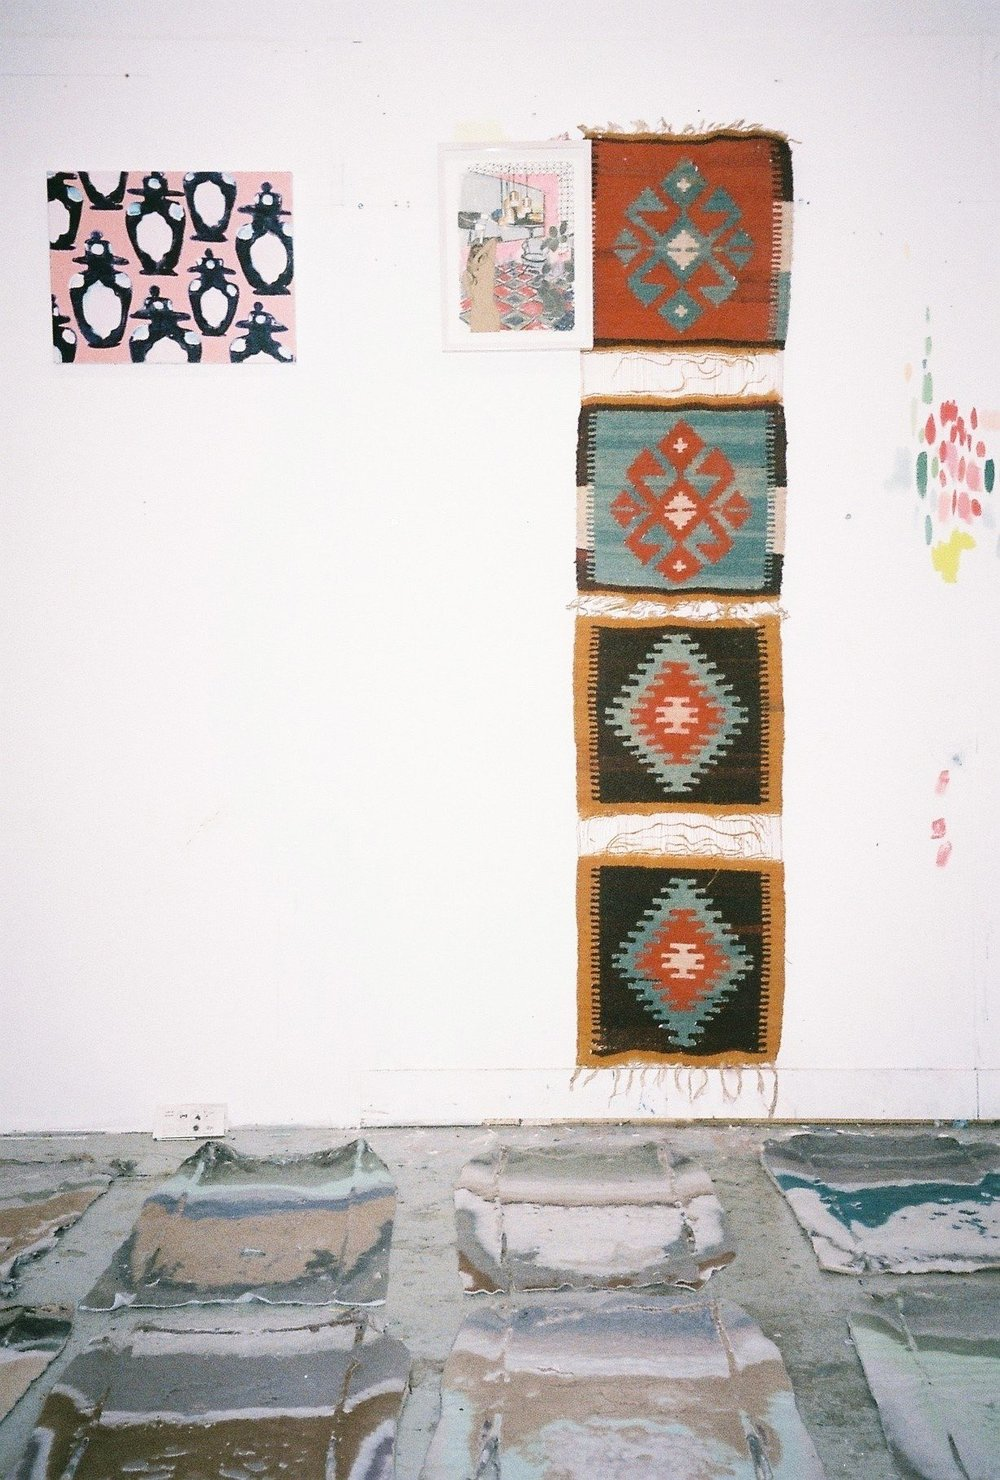 Sara Berman, Lint Sweaters in process (on floor), small painting on wall 'Penguin Soldiers 2017 46cm by 36cm oil in linen, framed Collage (on wall)-exploratory collage work, Iranian textiles (on wall)| Photography by Delilah Olson -